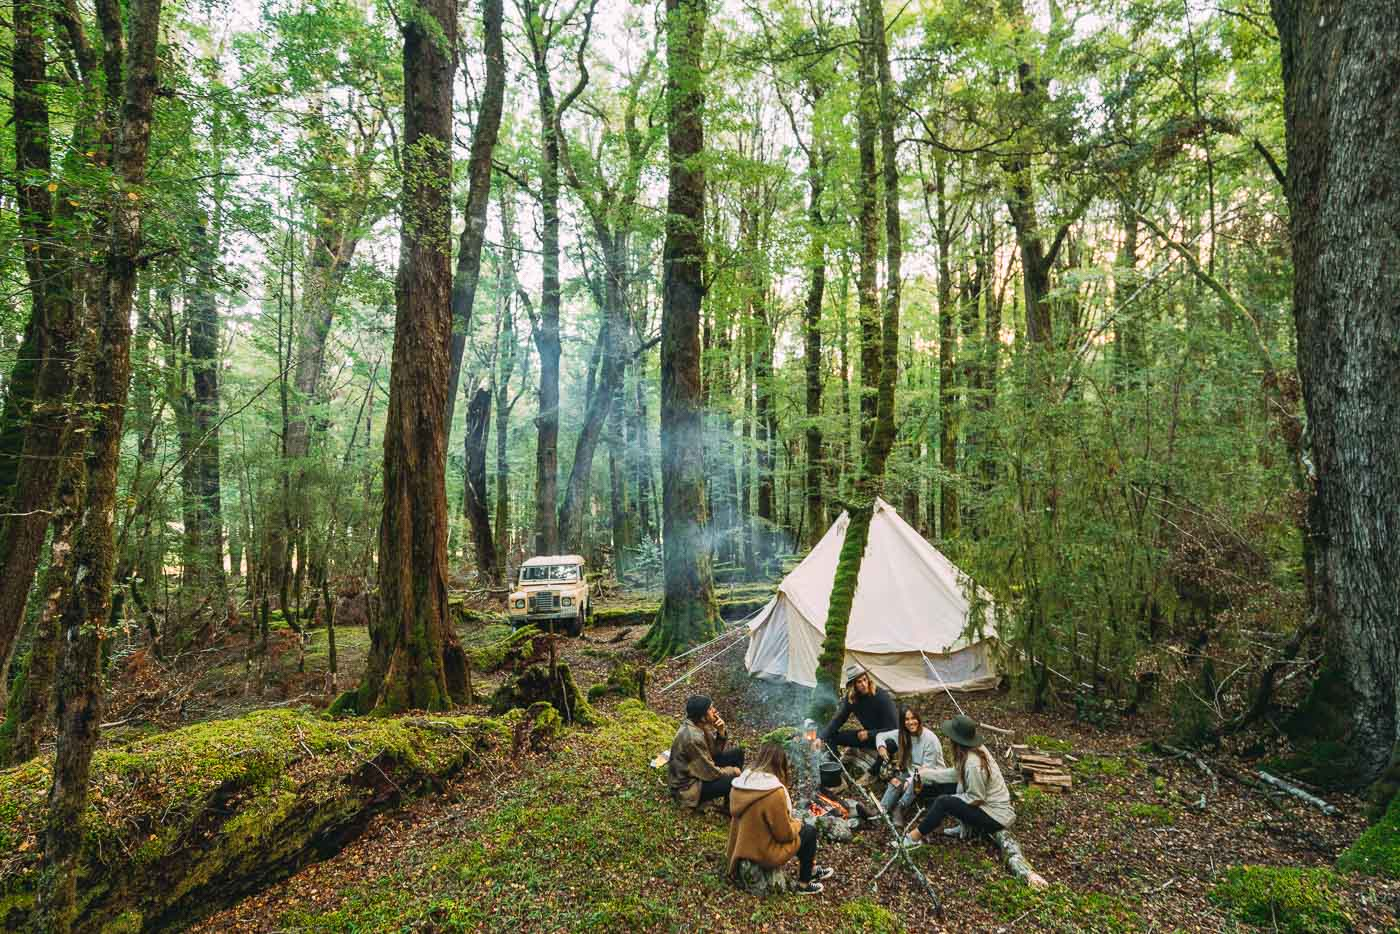 Camping in the Ancient forest of New Zealand